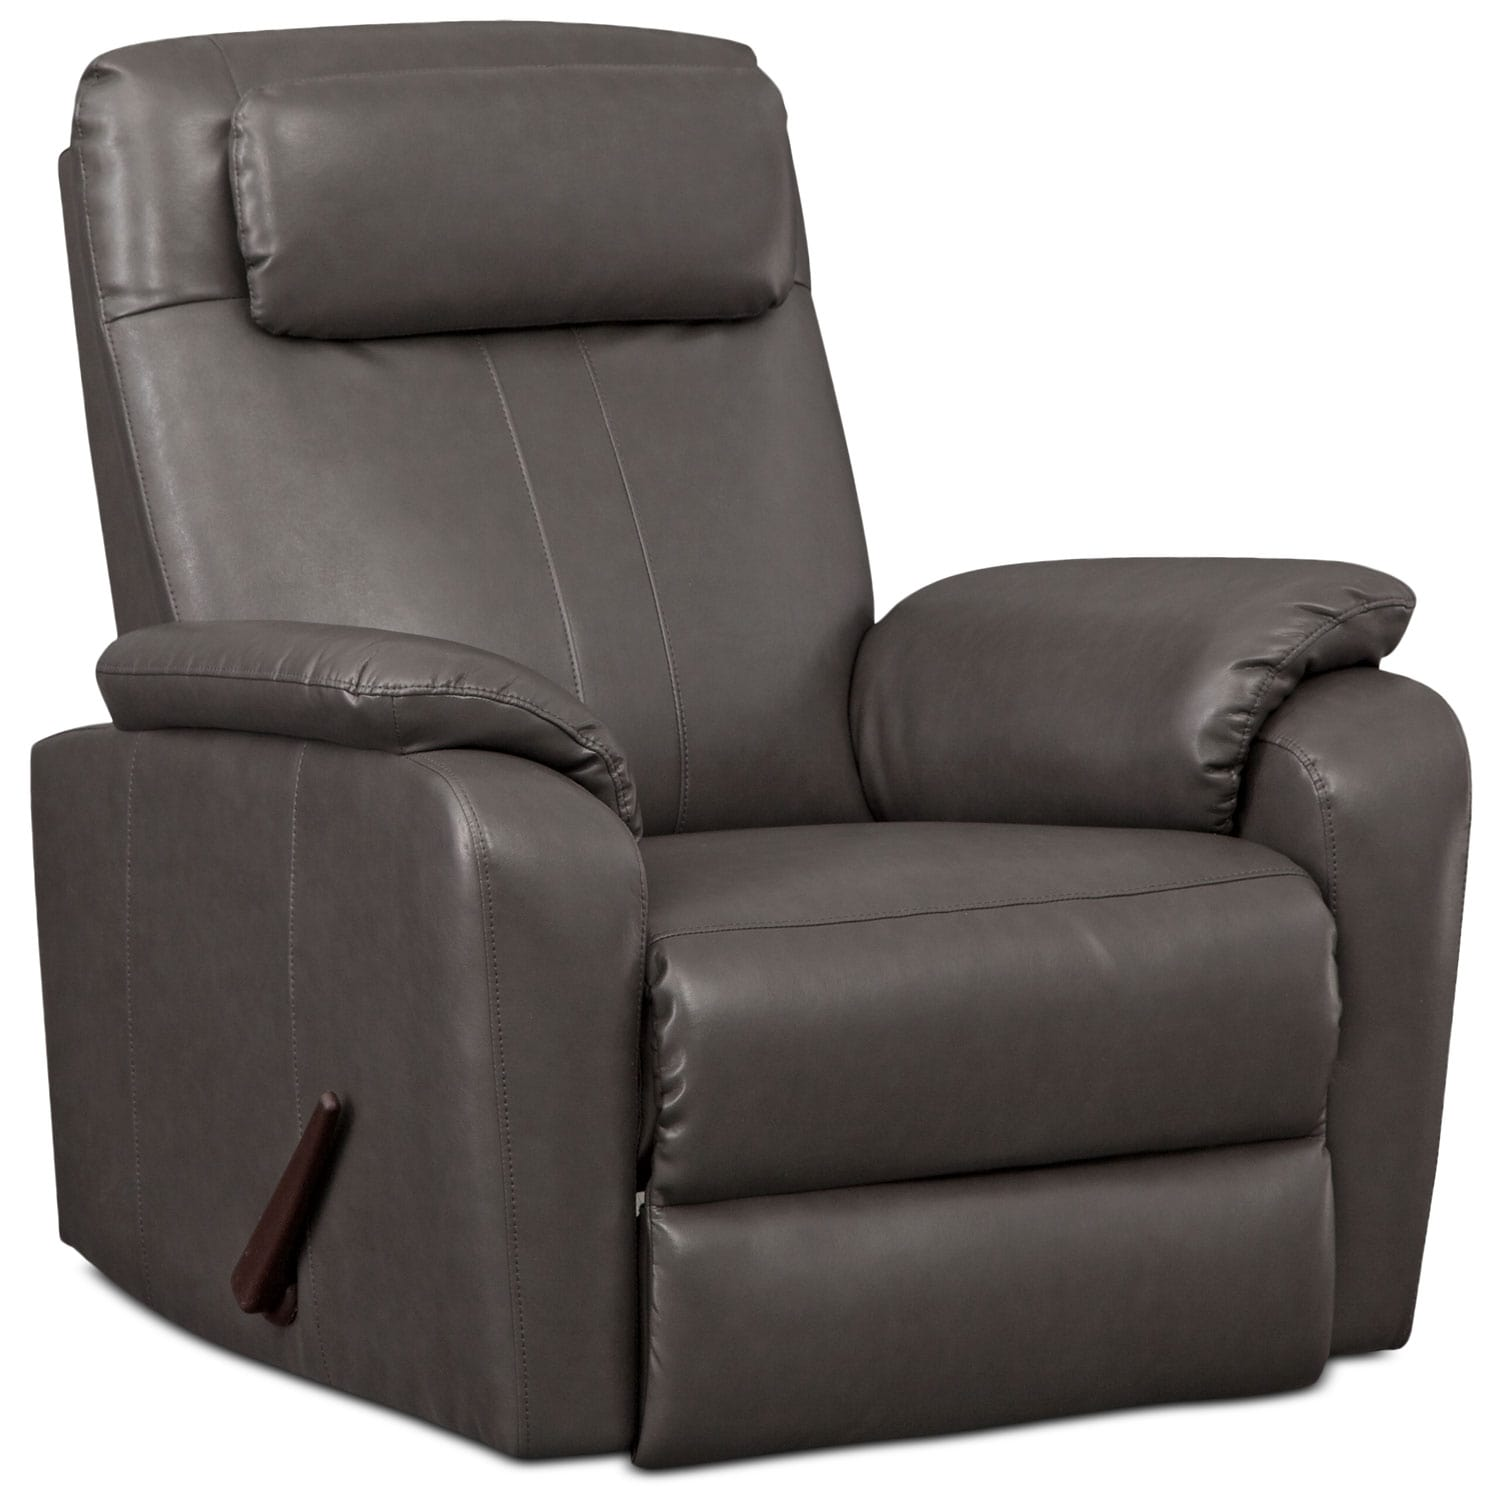 Sparta Rocker Recliner - Gray